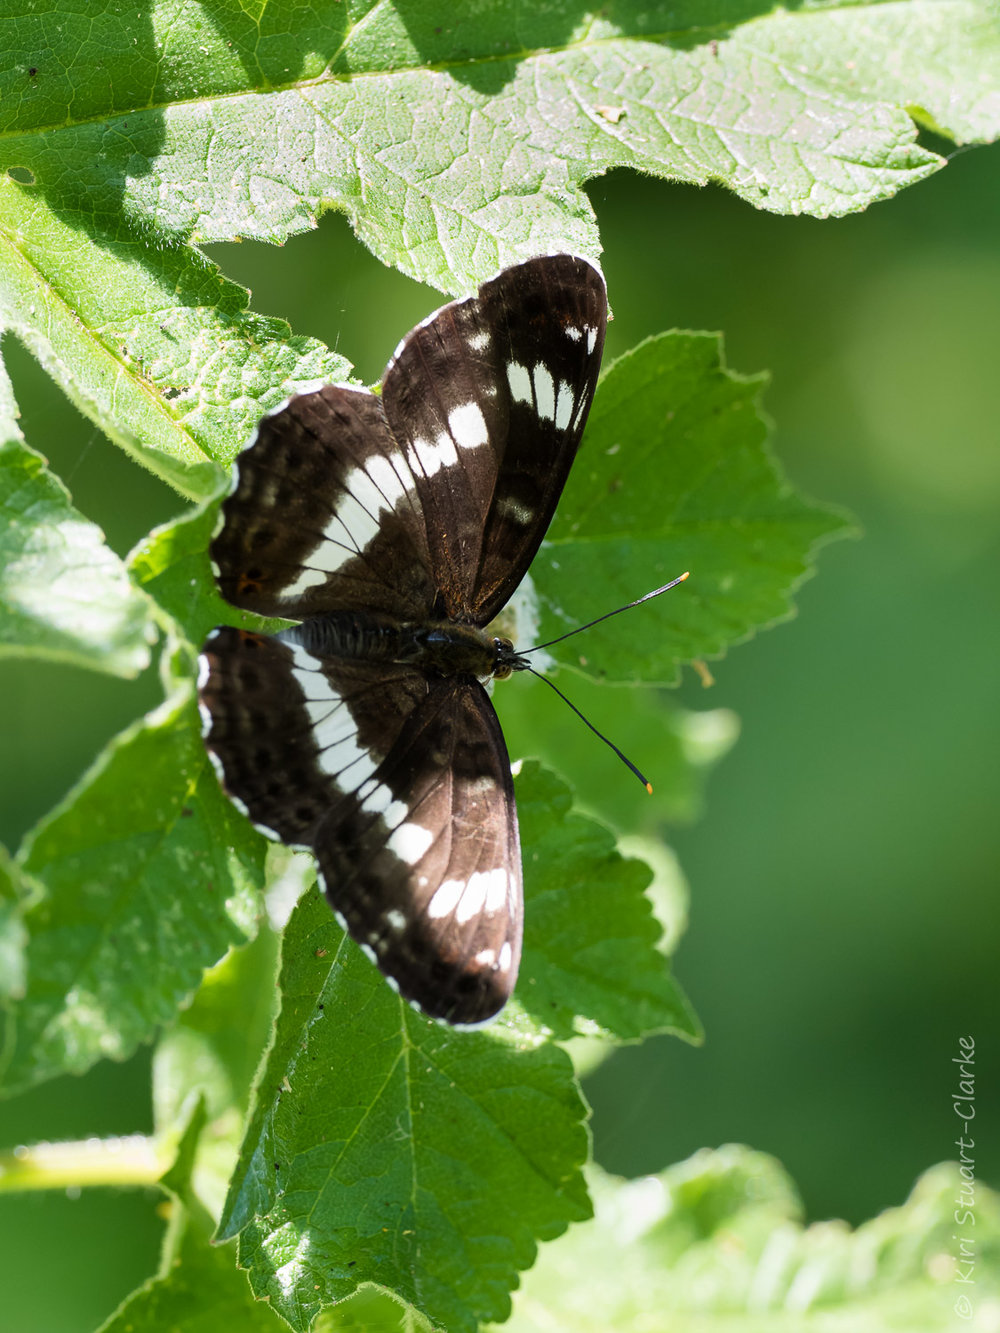 White Admirals look similar to Purple Emperors but are smaller, lack the orange markings and purple iridescence